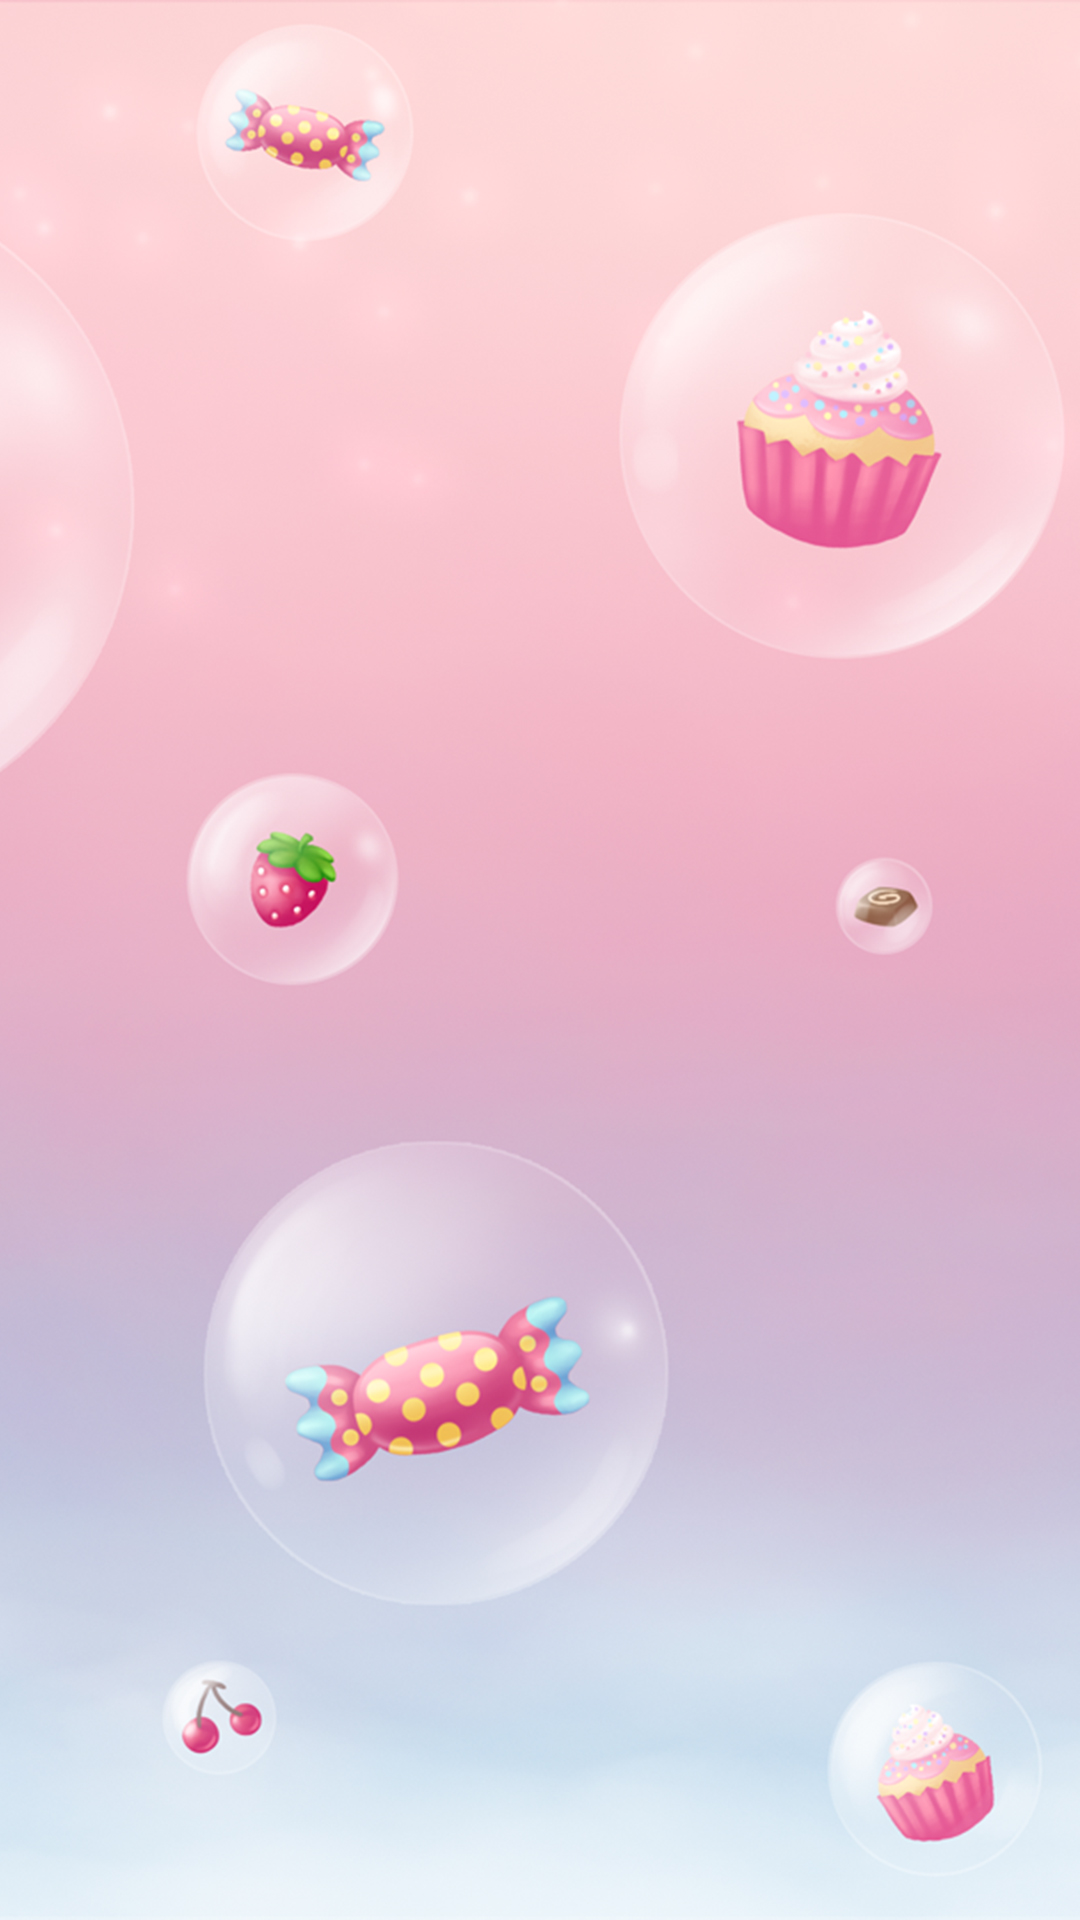 girly cute iphone6s wallpaper 💕: cupcakes | iphone wallpaper